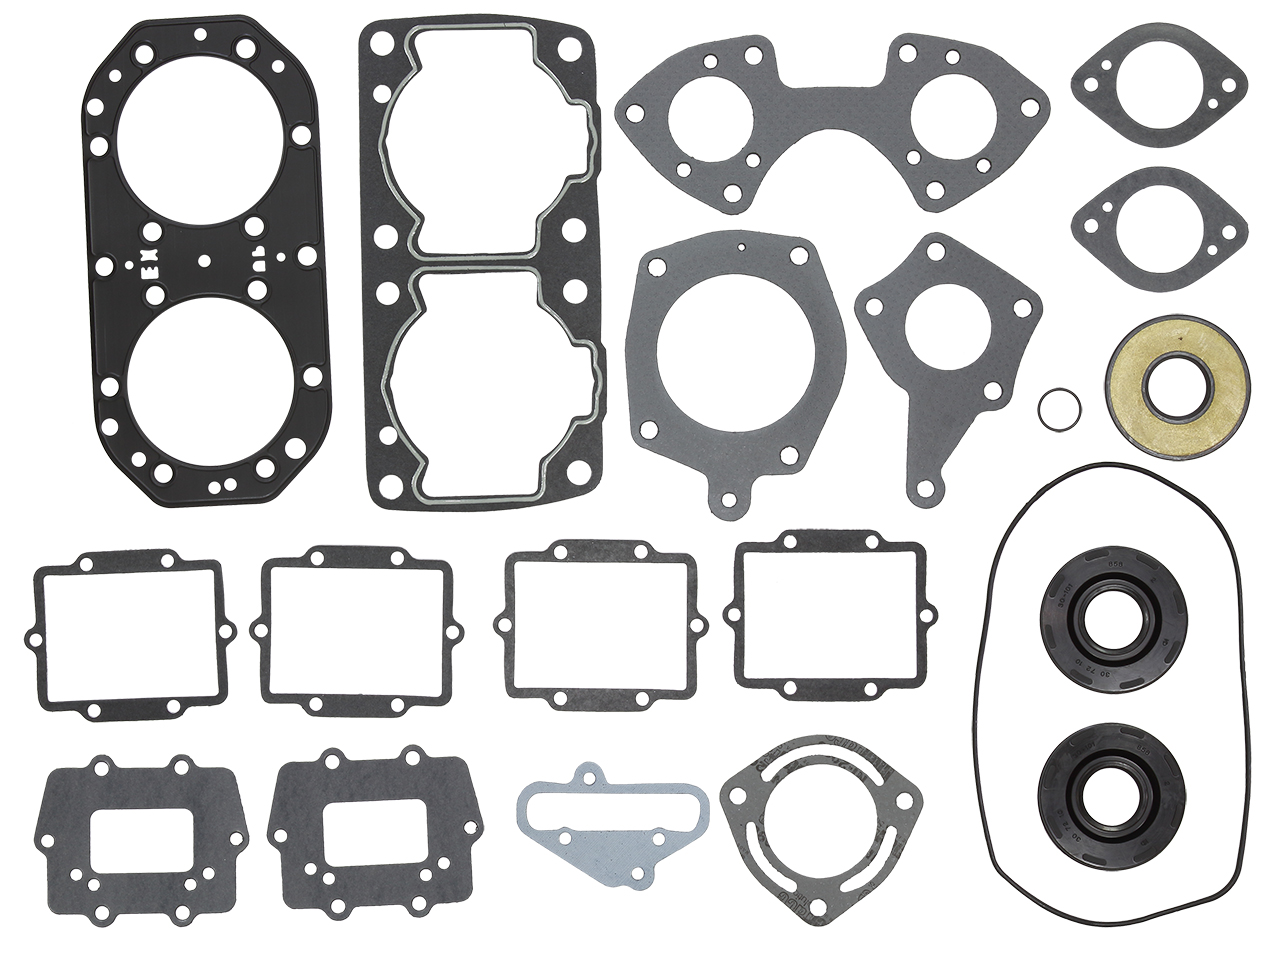 NAMURA COMPLETE GASKET KIT NW-20002F